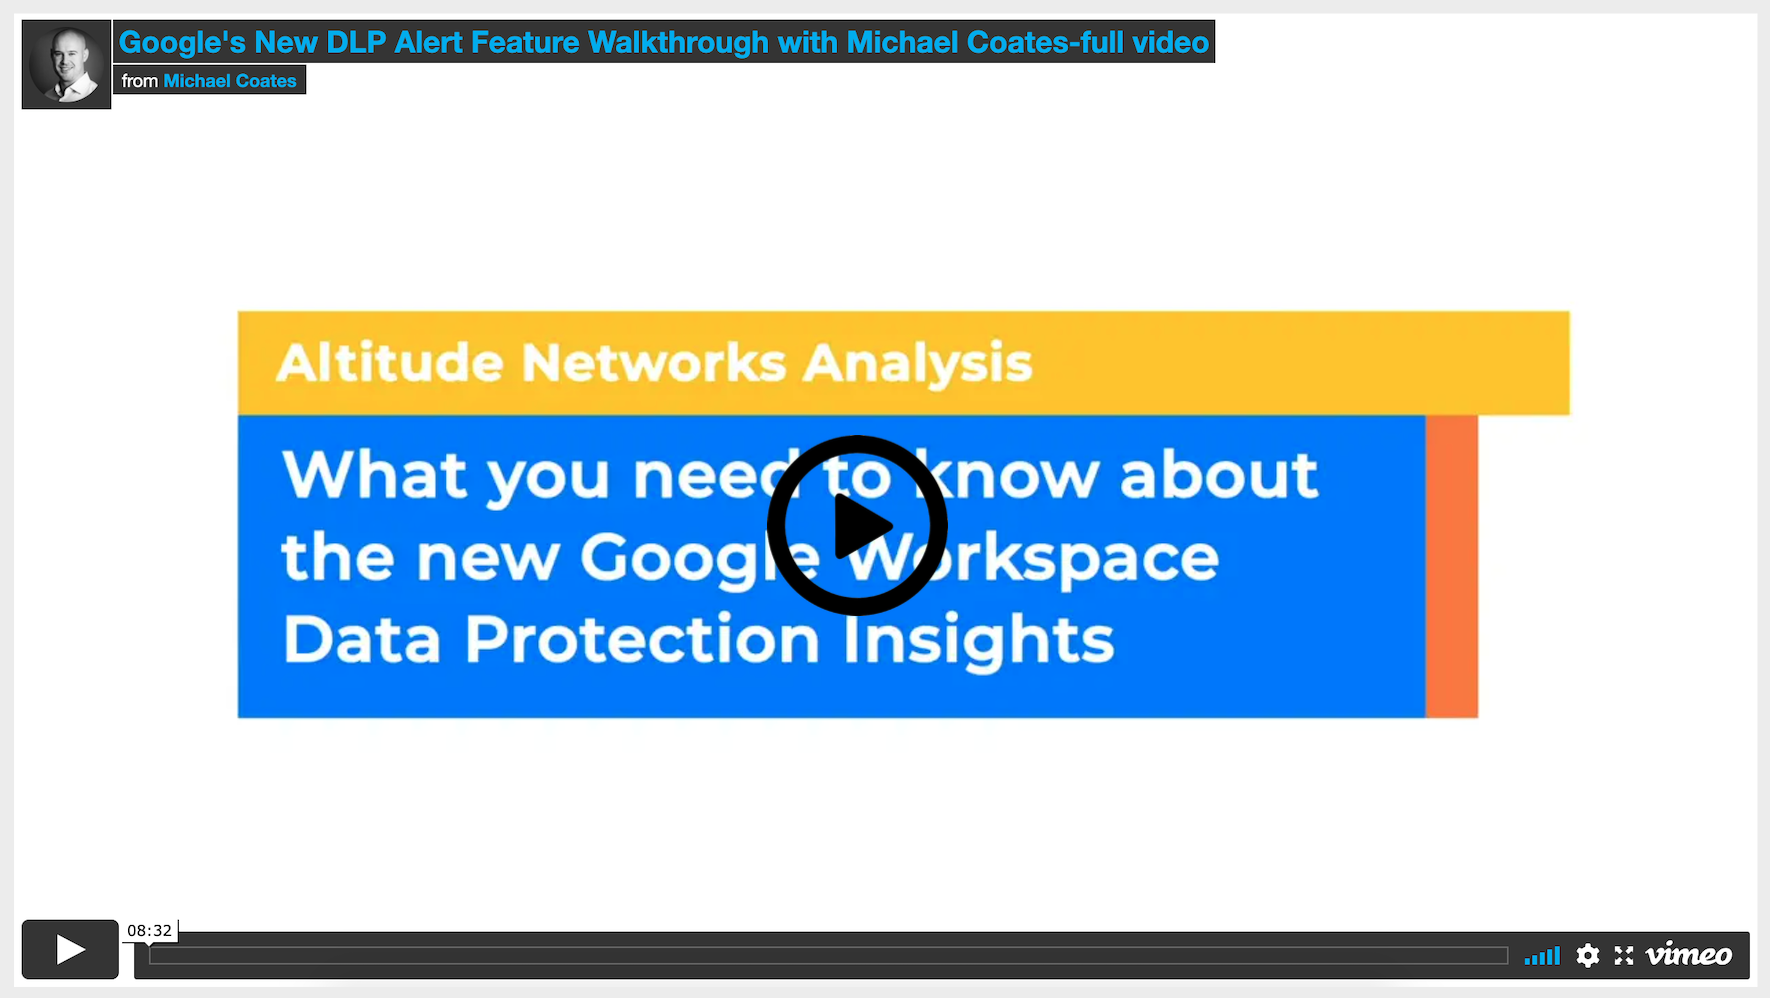 This video will give you a sneak peak into the new Drive DLP Data Protection Insights services provided by Google today.